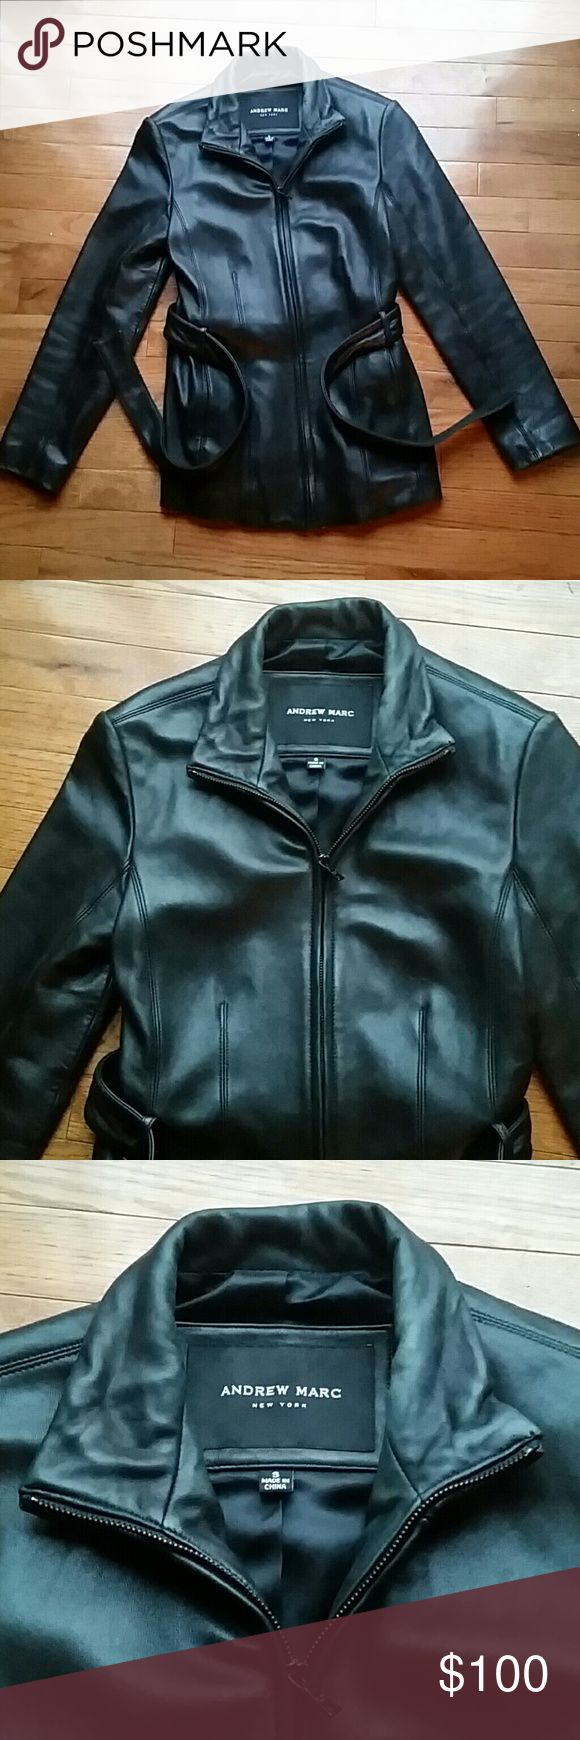 Leather jacket Andrew Marc black leather jacket size small with belt. Andrew Marc. Wear shown on inside of collar wear crease folds and pull on some interior lining by inside tag as in last 2 pictures. Andrew Marc Jackets & Coats Utility Jackets